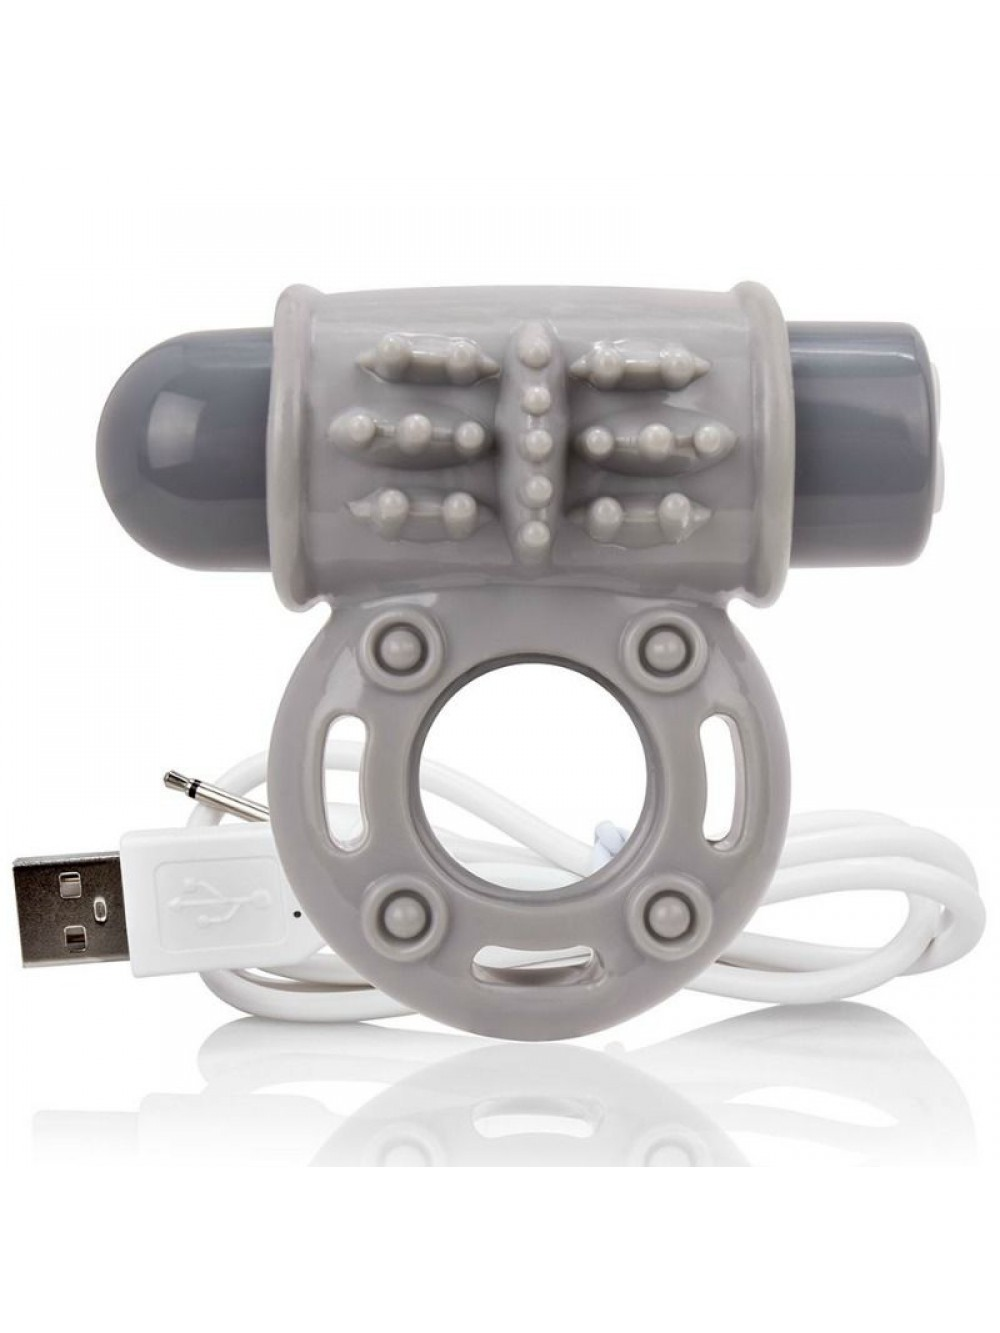 SCREAMING O VIBRATING RECHARGEABLE RING O WOW GREY